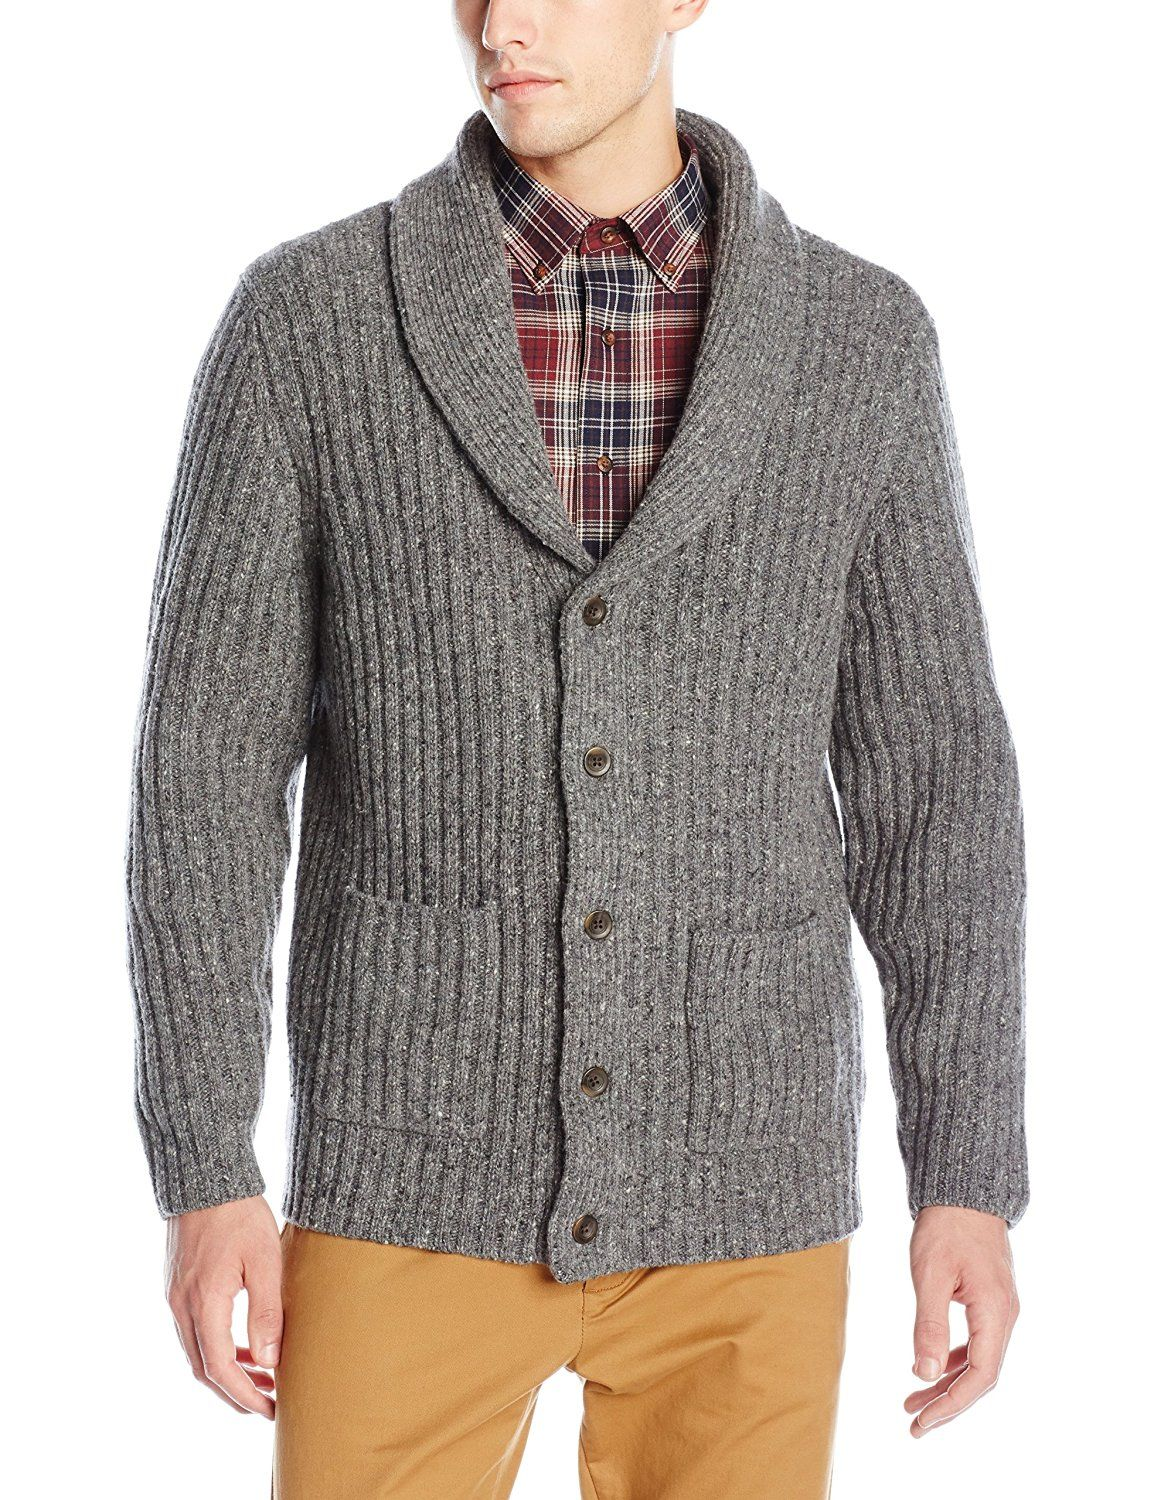 47bf55133 1920s Style Classic Shunky Knit Shawl Collar Men s Sweater- Pendleton Mens  Tk Donegal Shawl Cardigan Sweater AT vintagedancer.com